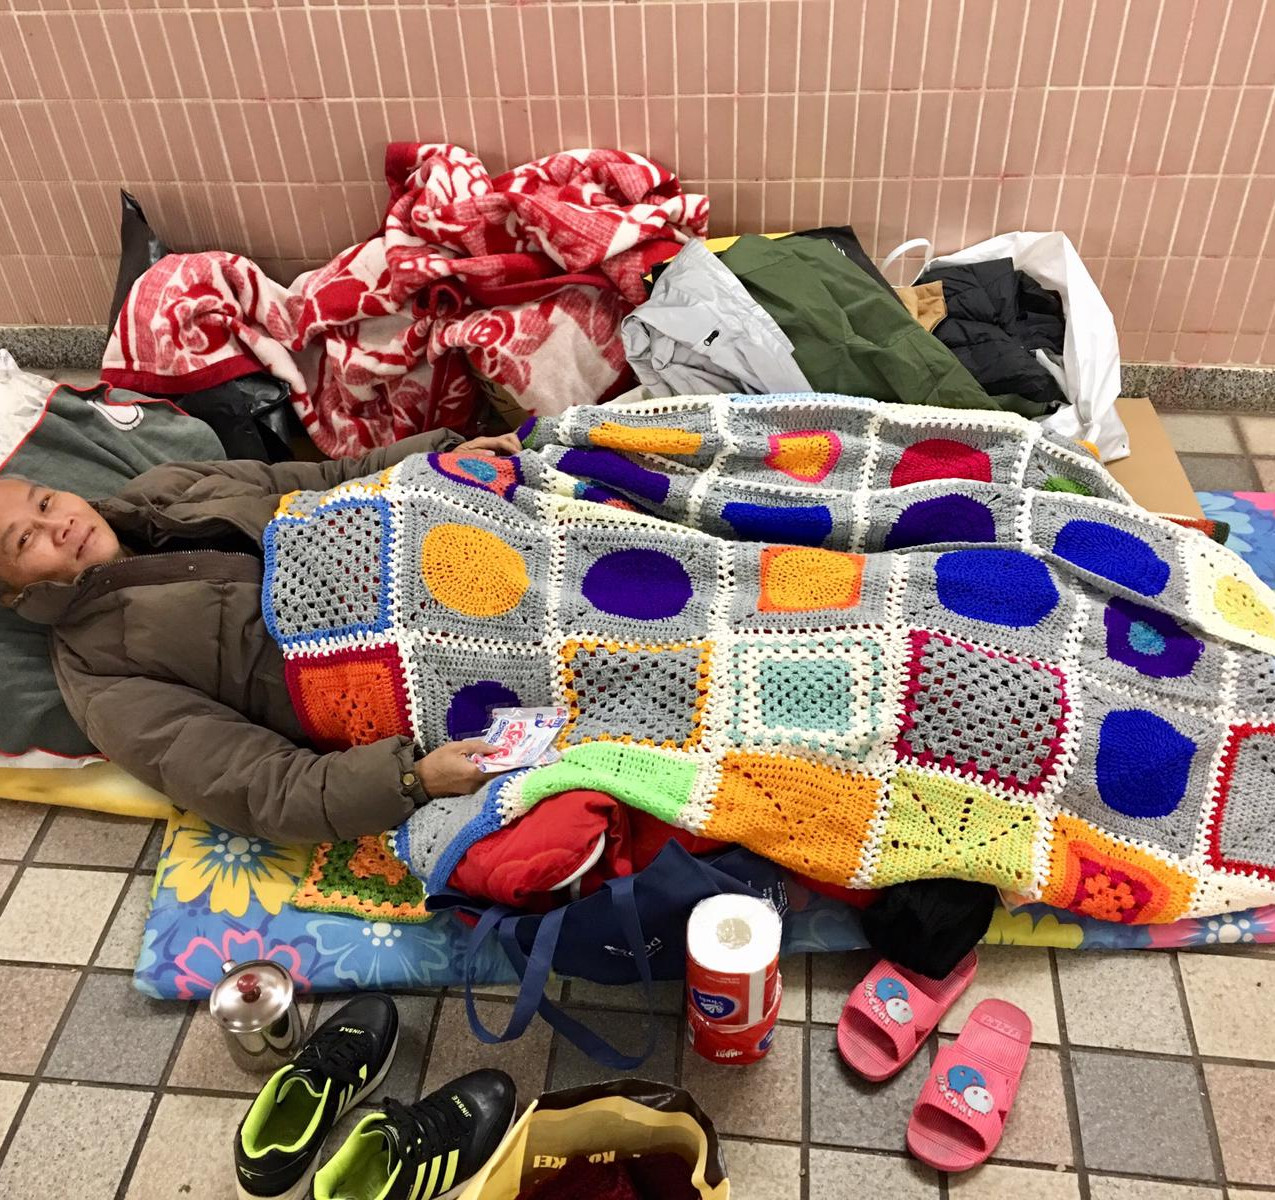 Homeless man with Completed Blanket